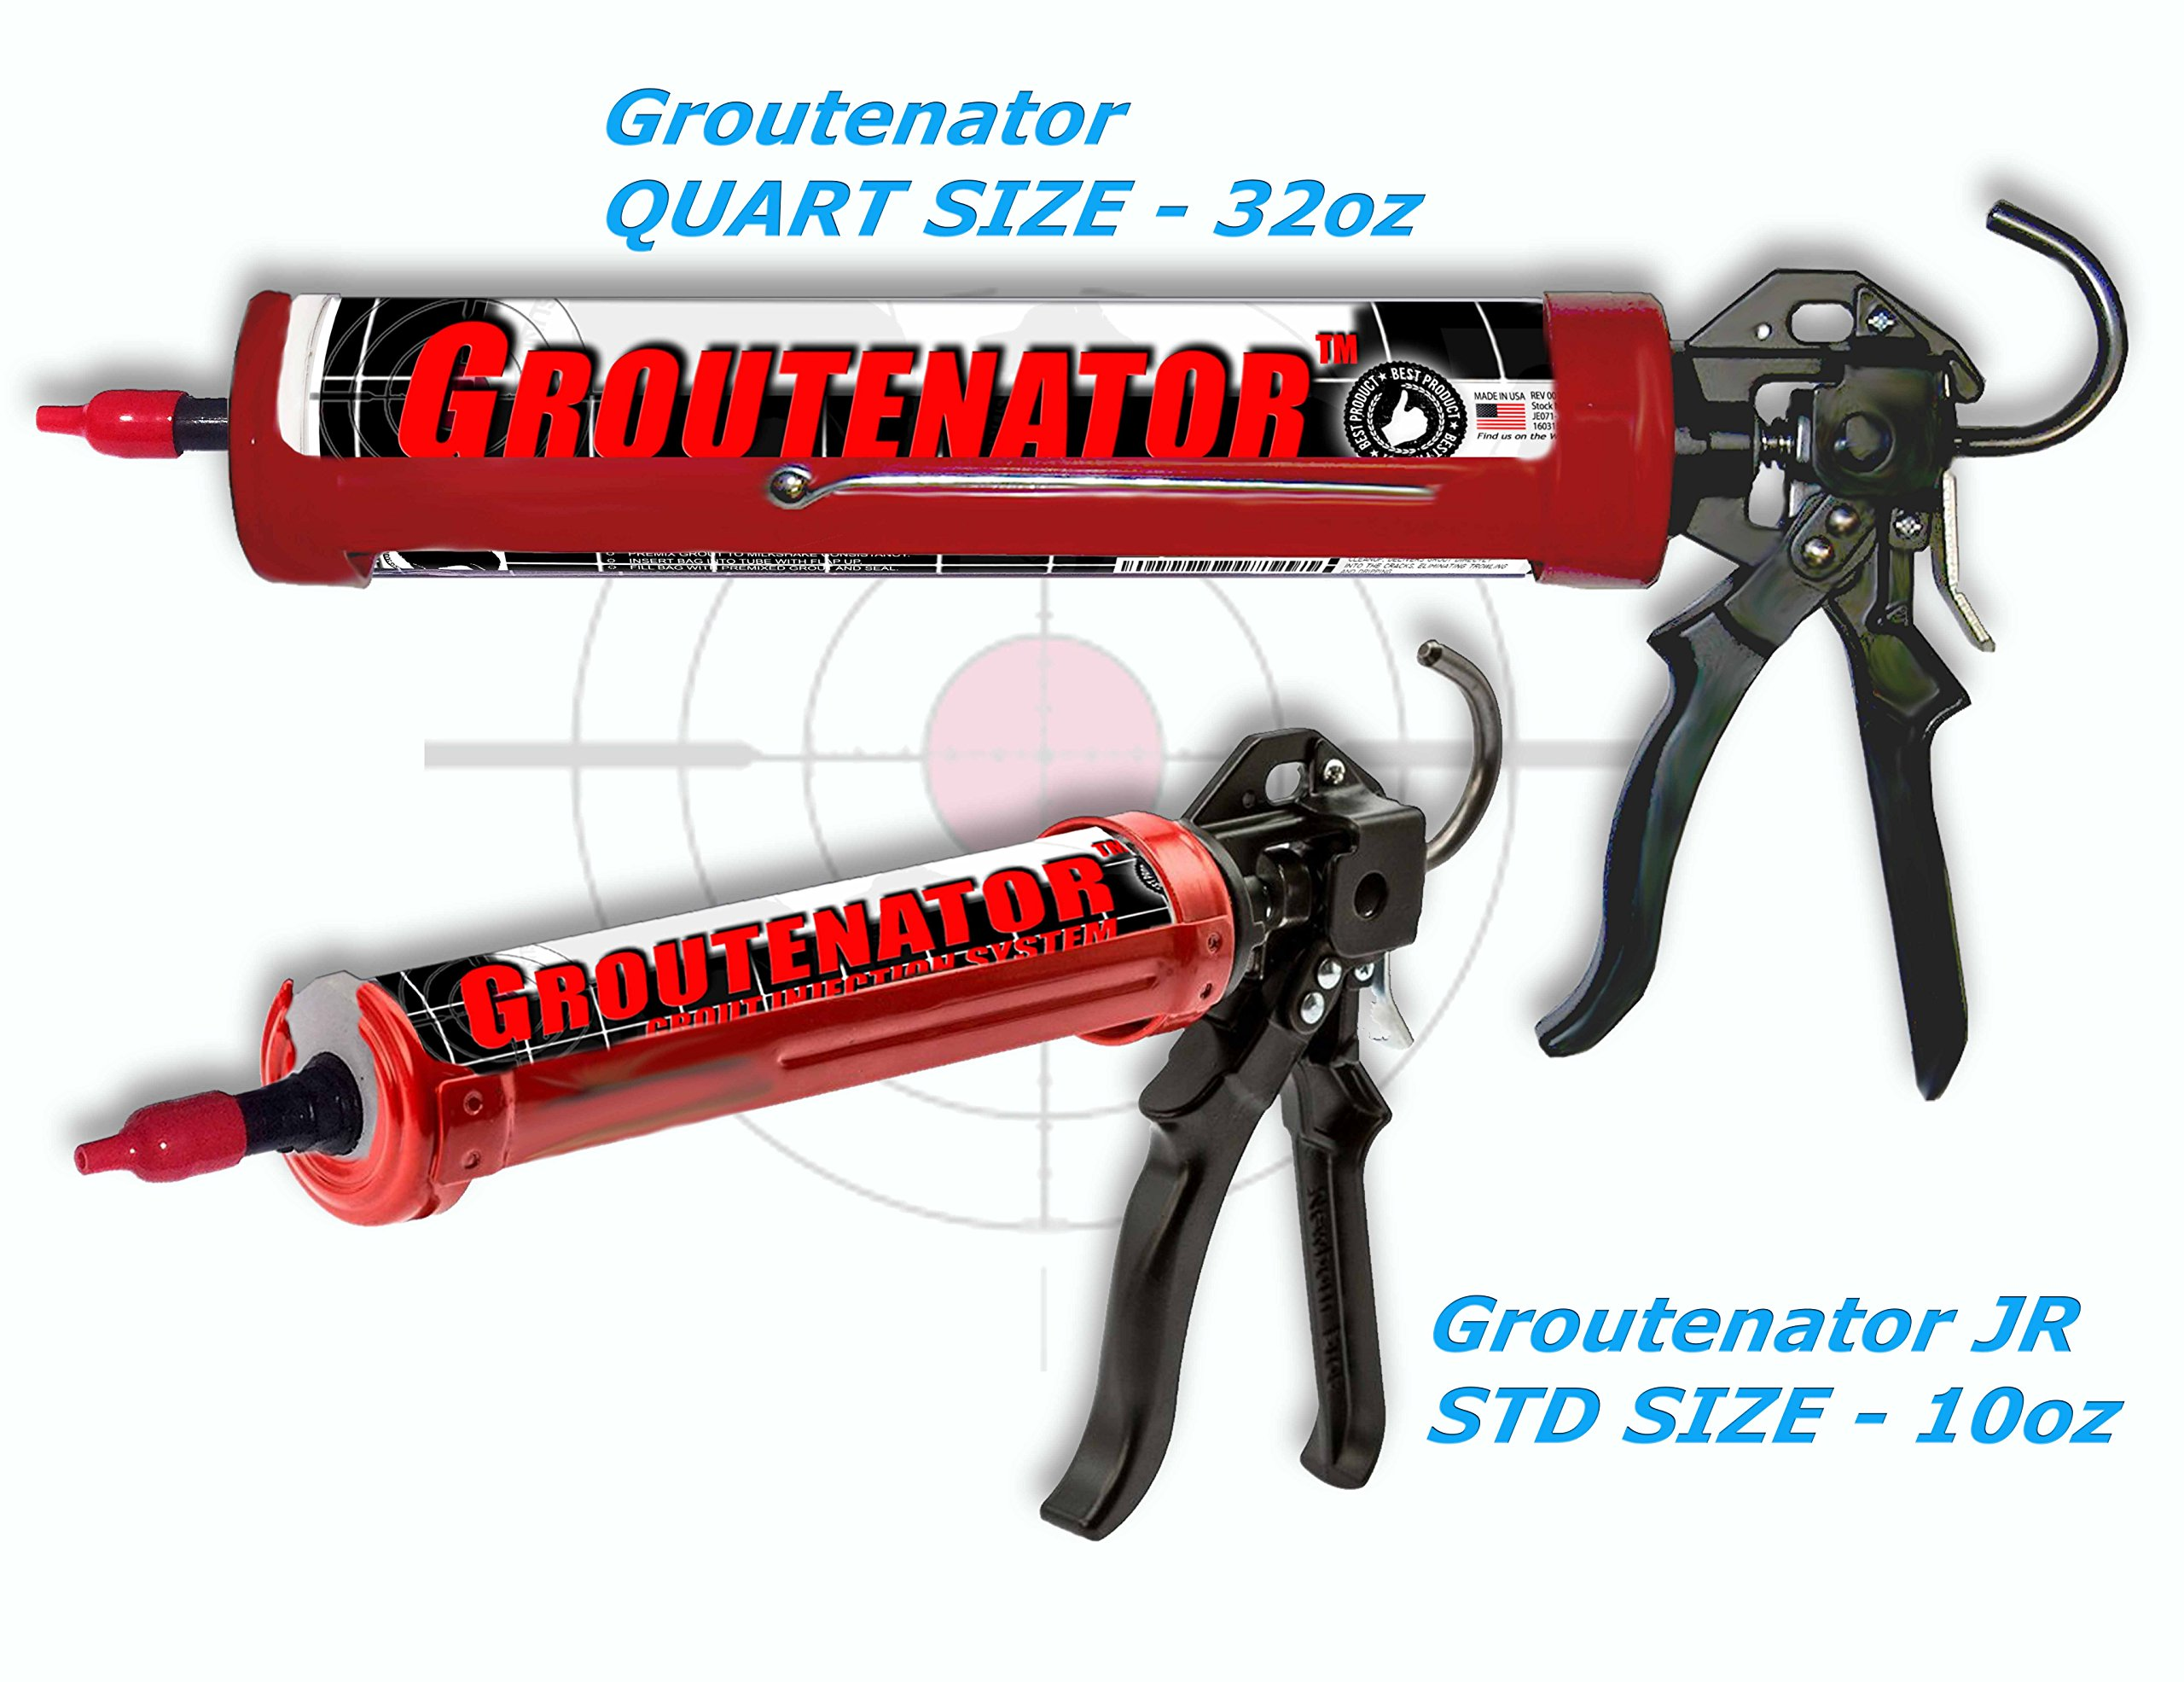 GROUTENATOR - Caulk Gun Injection System for Tile Grout, Mortar, Cement, Glues and more... Grout Bag and Float Replacement. by Sundog Systems (Image #4)